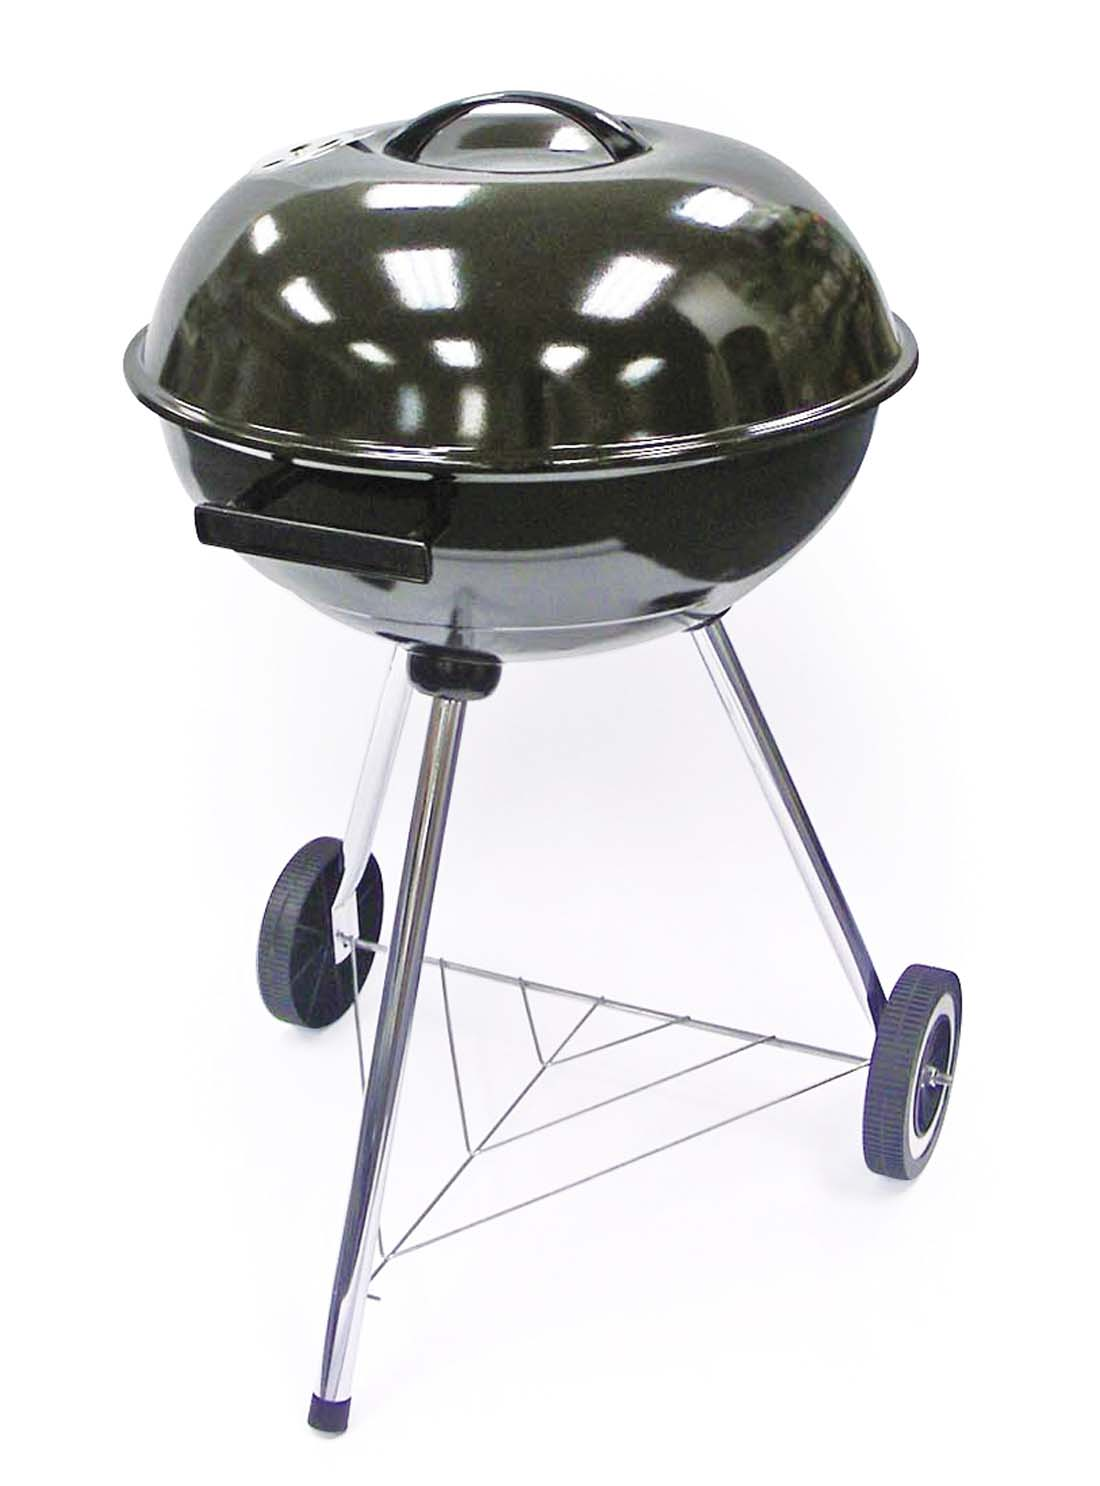 View BBQ KETTLE 22 INCH CHARCOAL ROUND BOXED